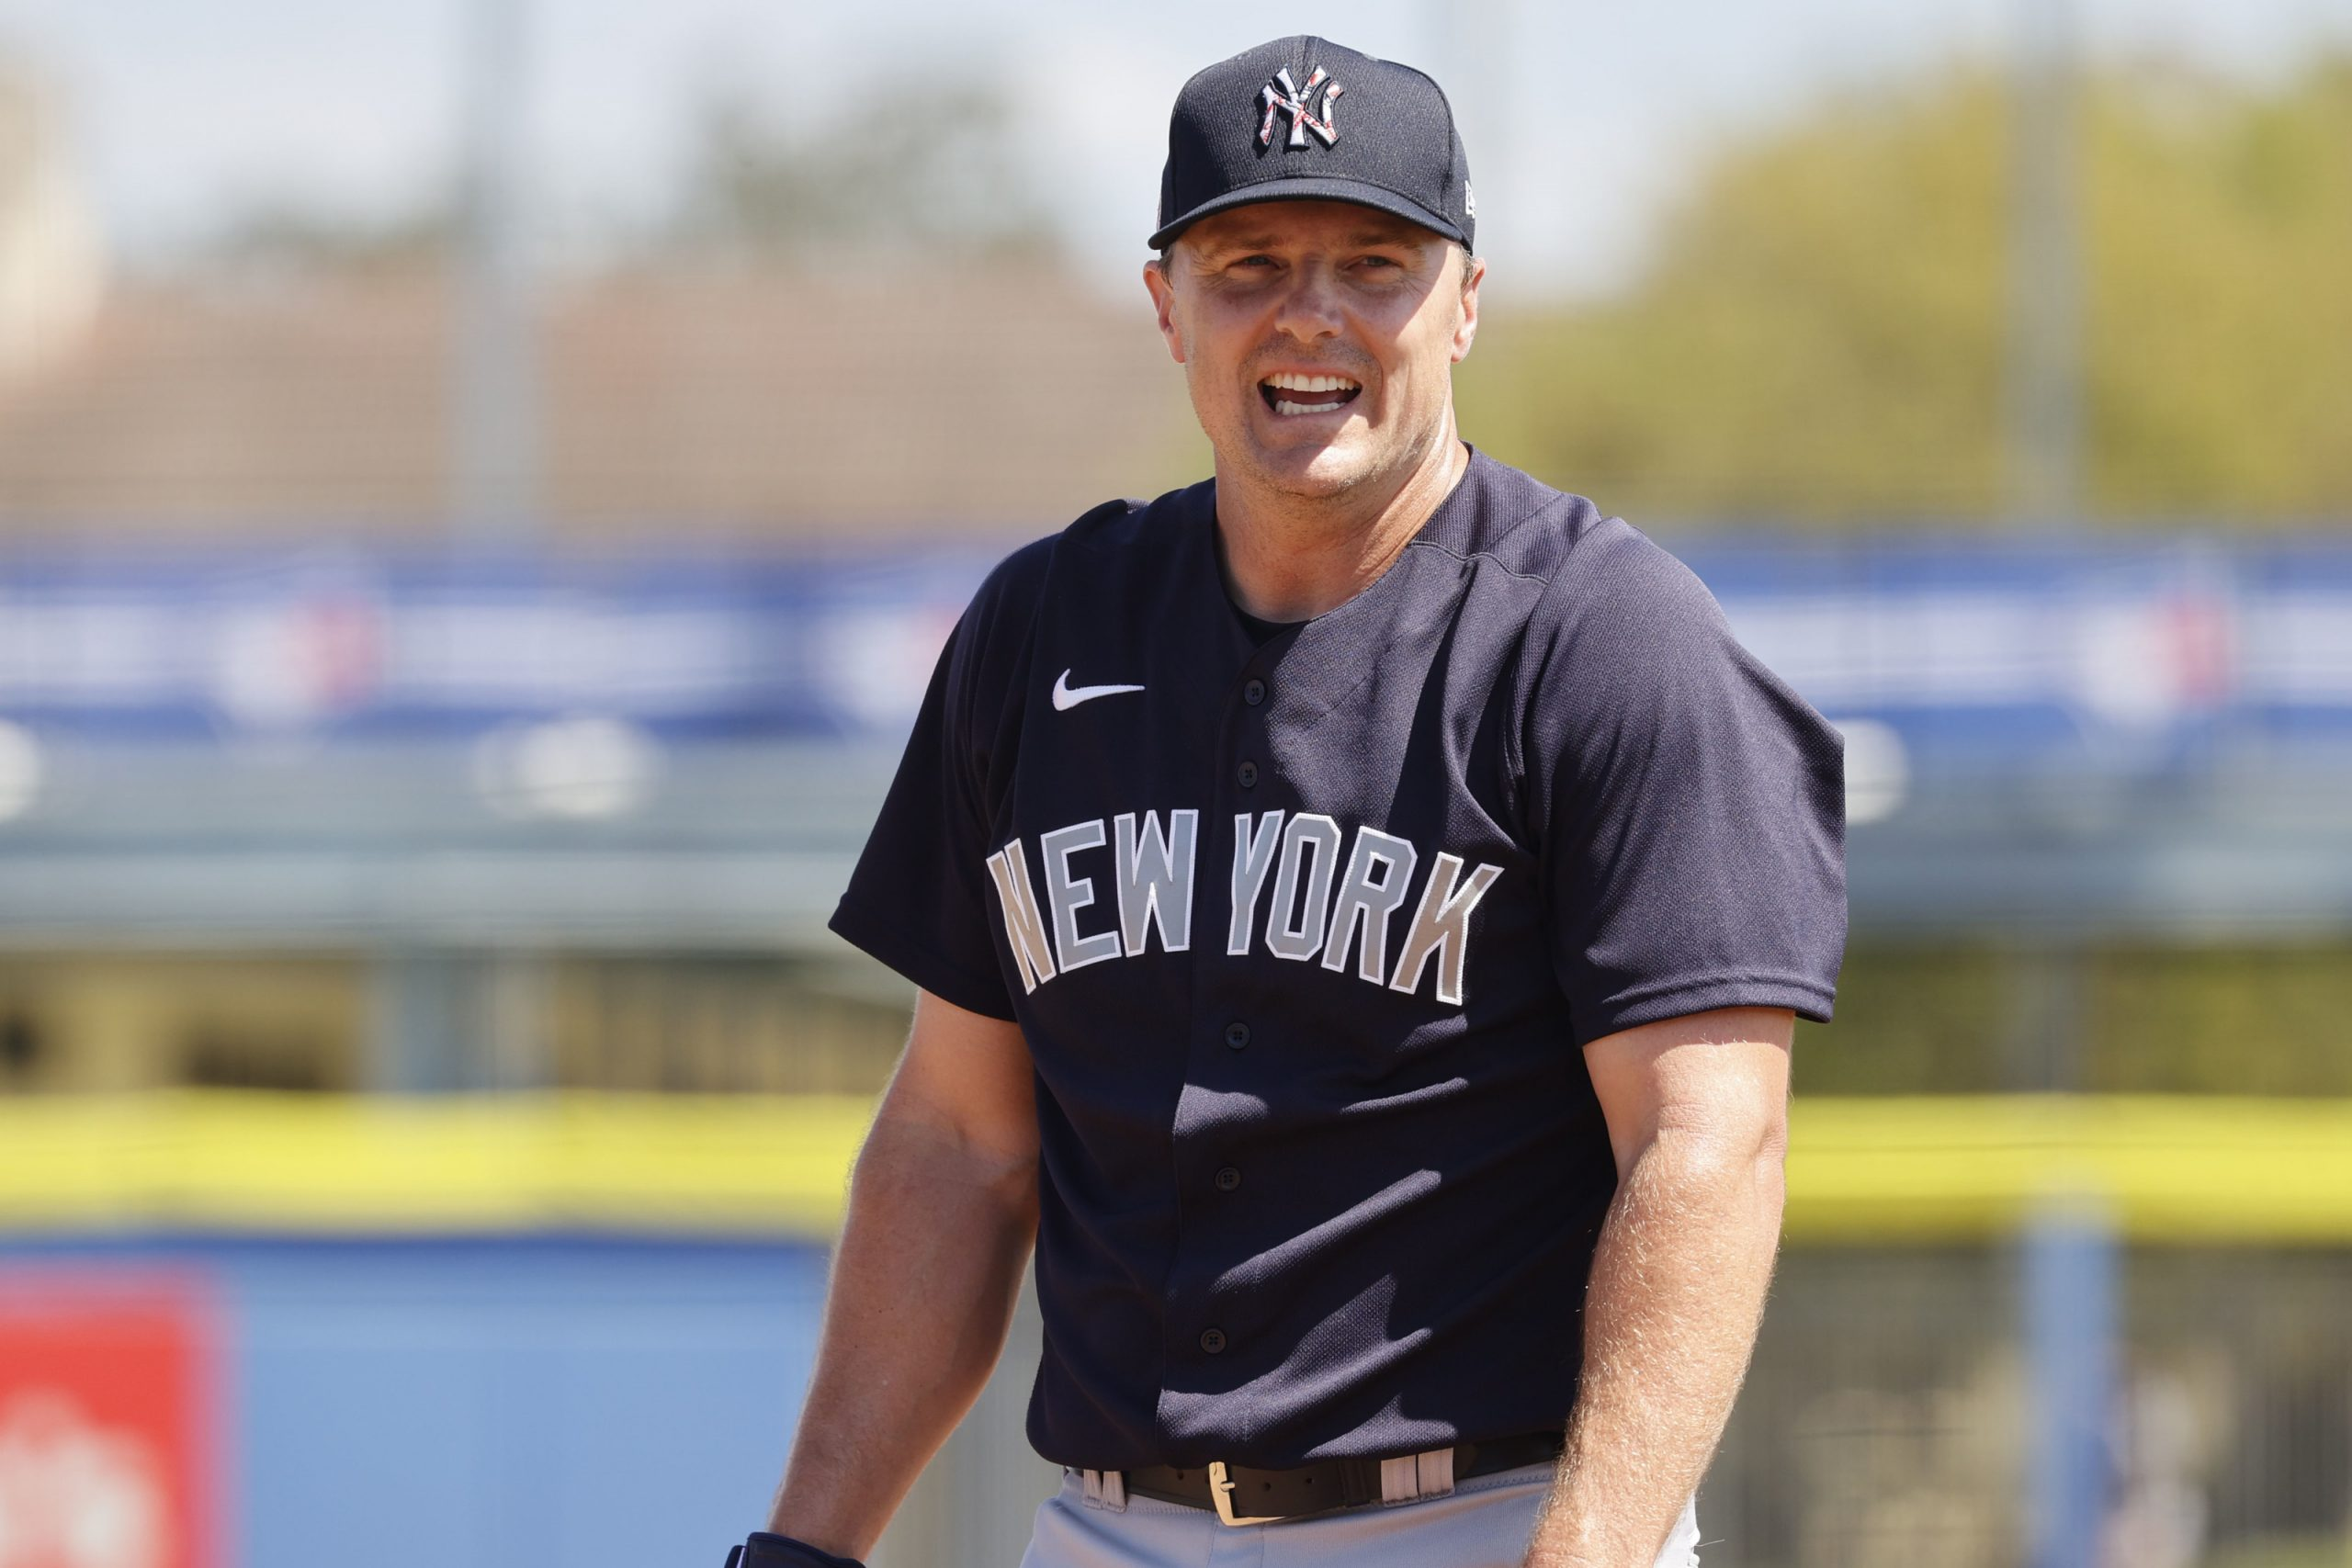 Ladies And Gentlemen, The Yankees Are Back In Business